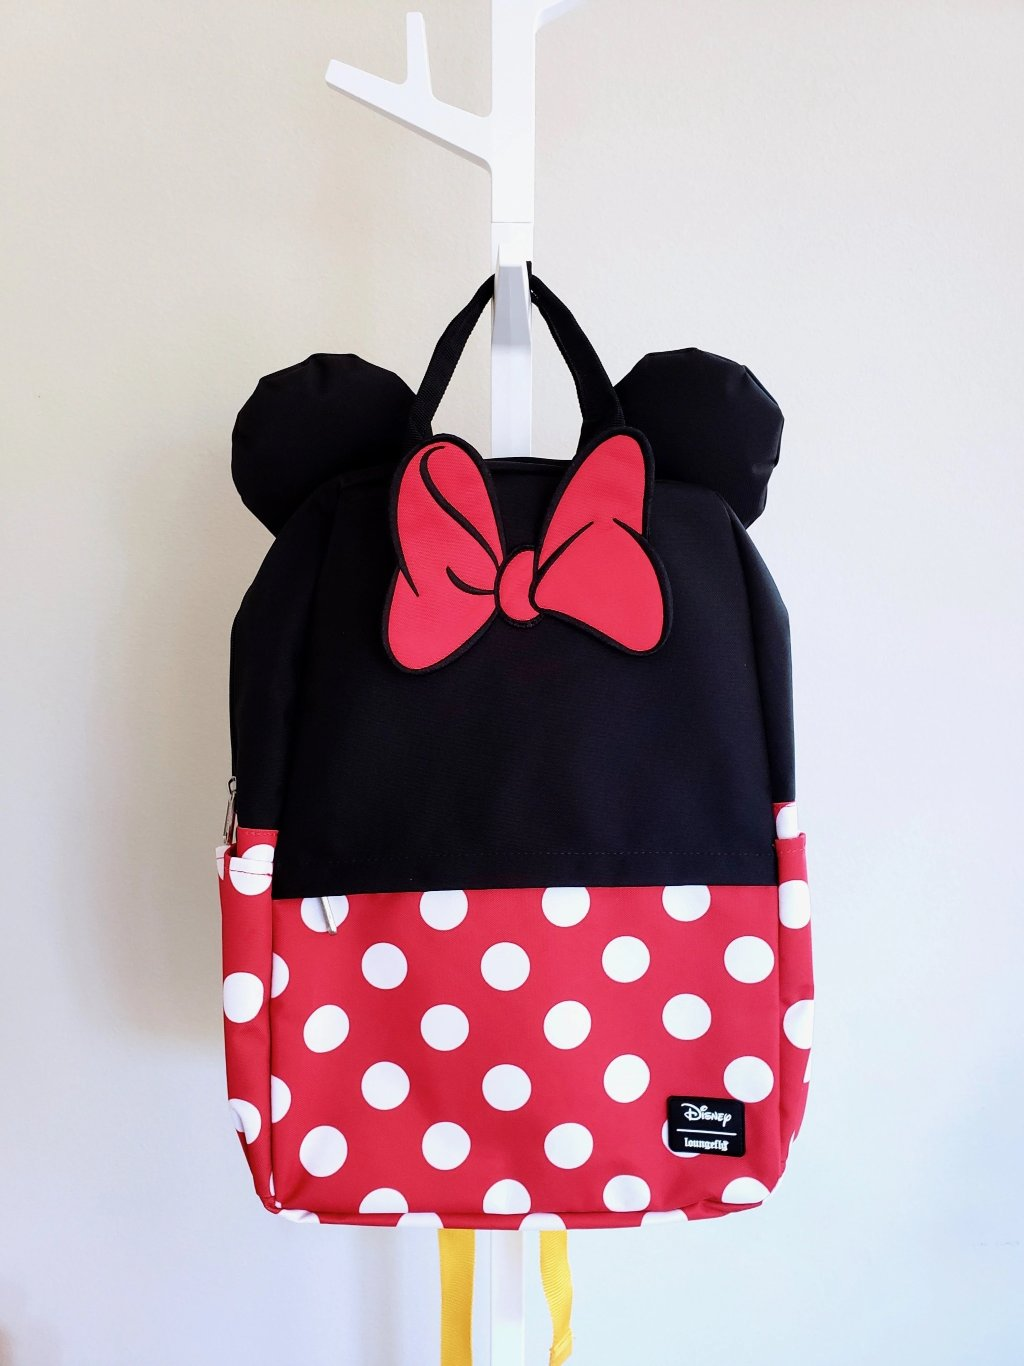 Loungefly Disney Minnie Mouse black, red and white polka dotted backpack with Minnie ears and red bow. front view